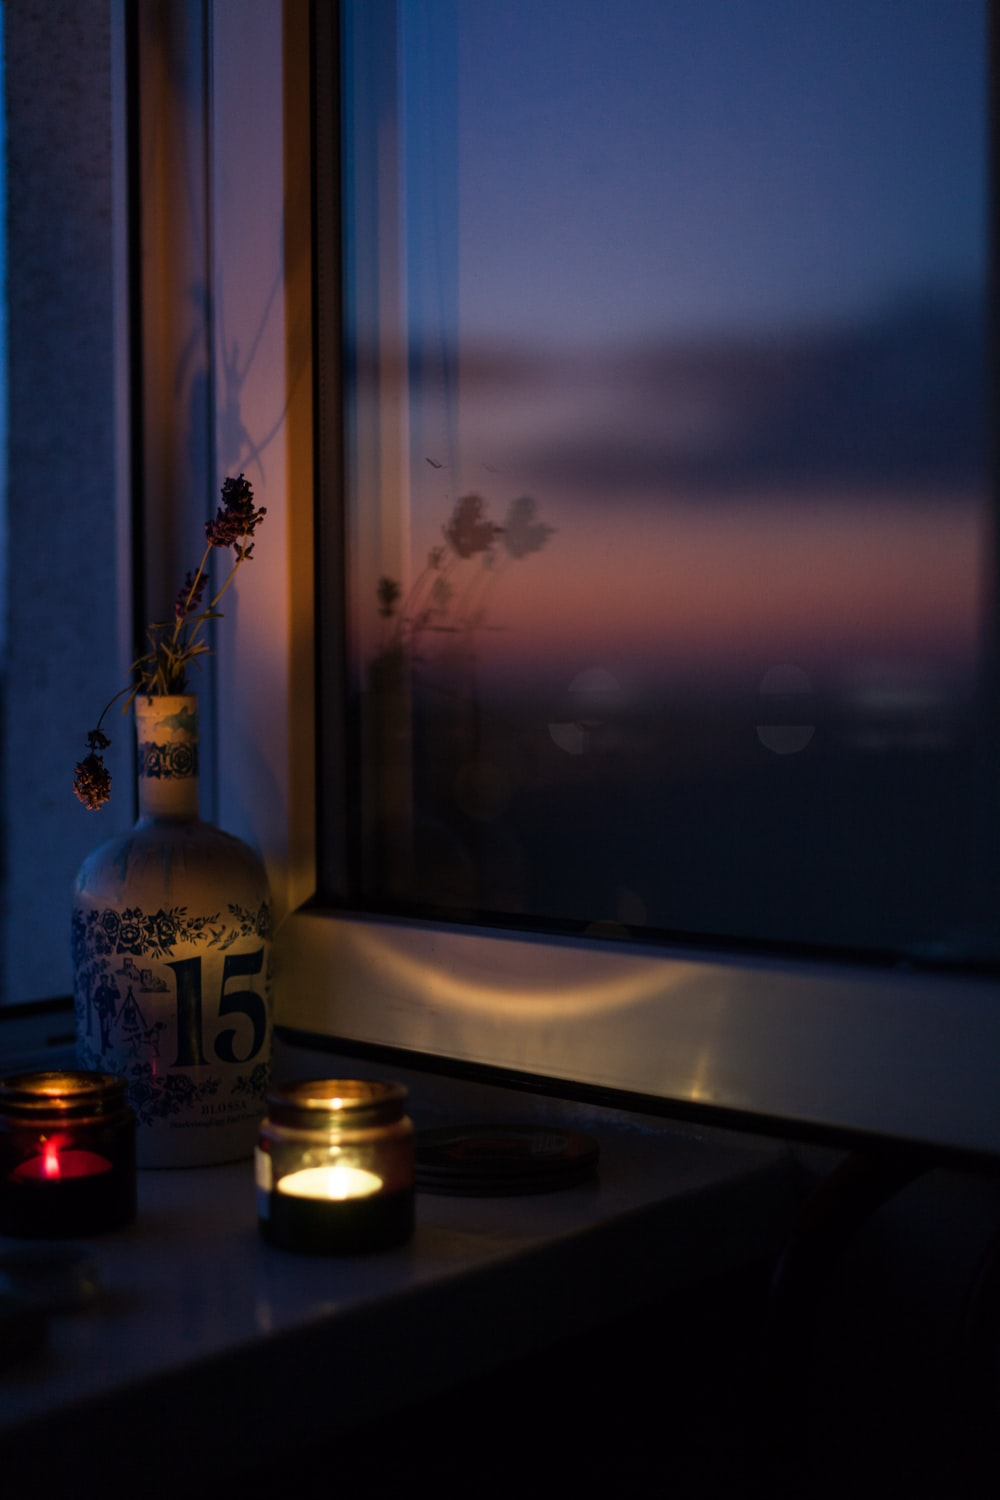 two lighted tealights near closed window